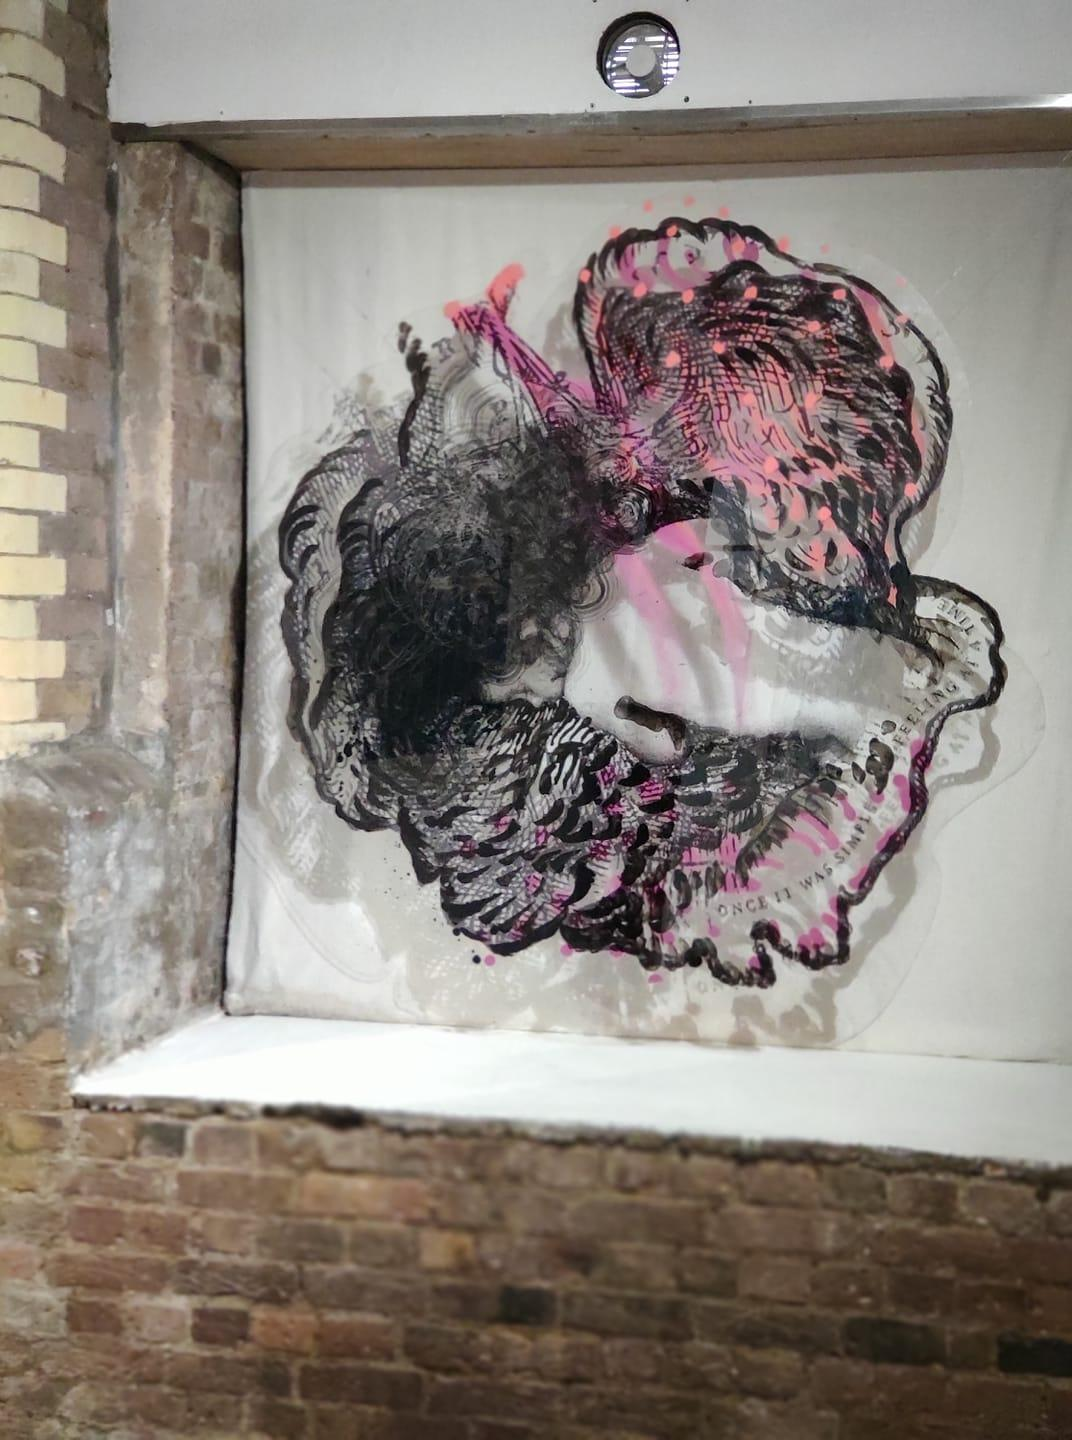 Heart I - Spatial Installation Painting Object, Contemporary Figurative Painting